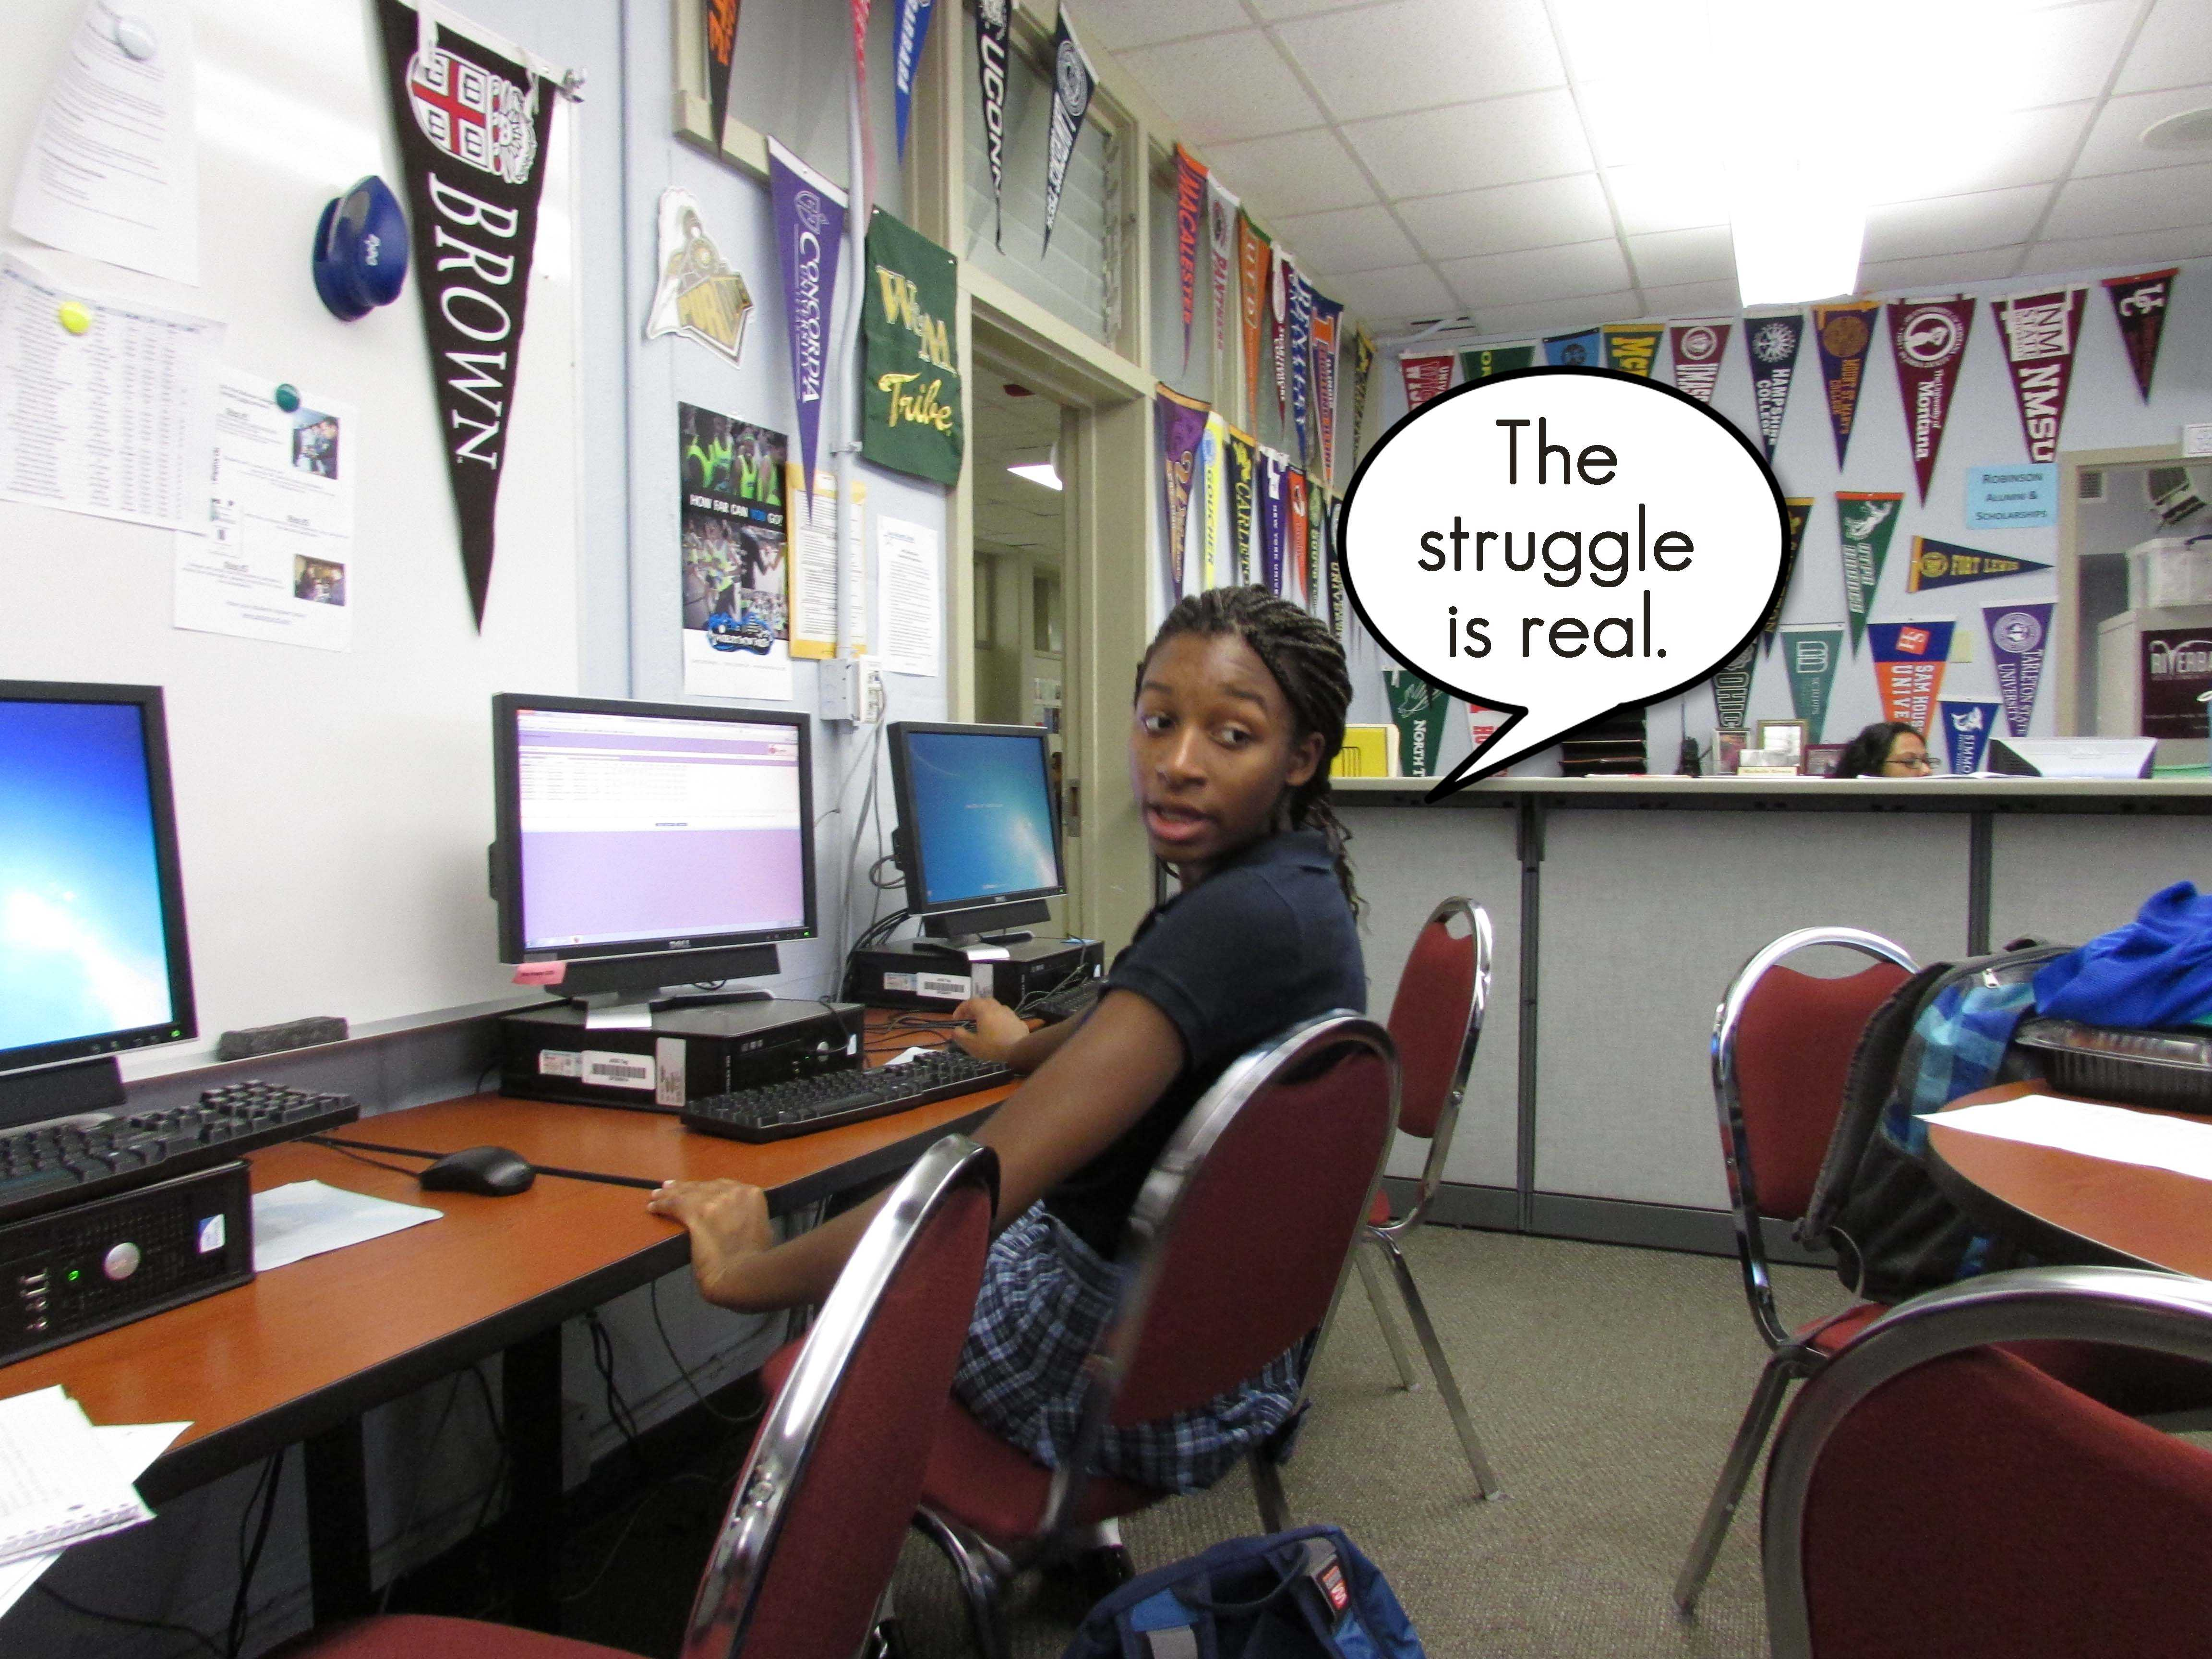 Maya Nunez (11), uses some 2014 slang while struggling in the college center one morning.